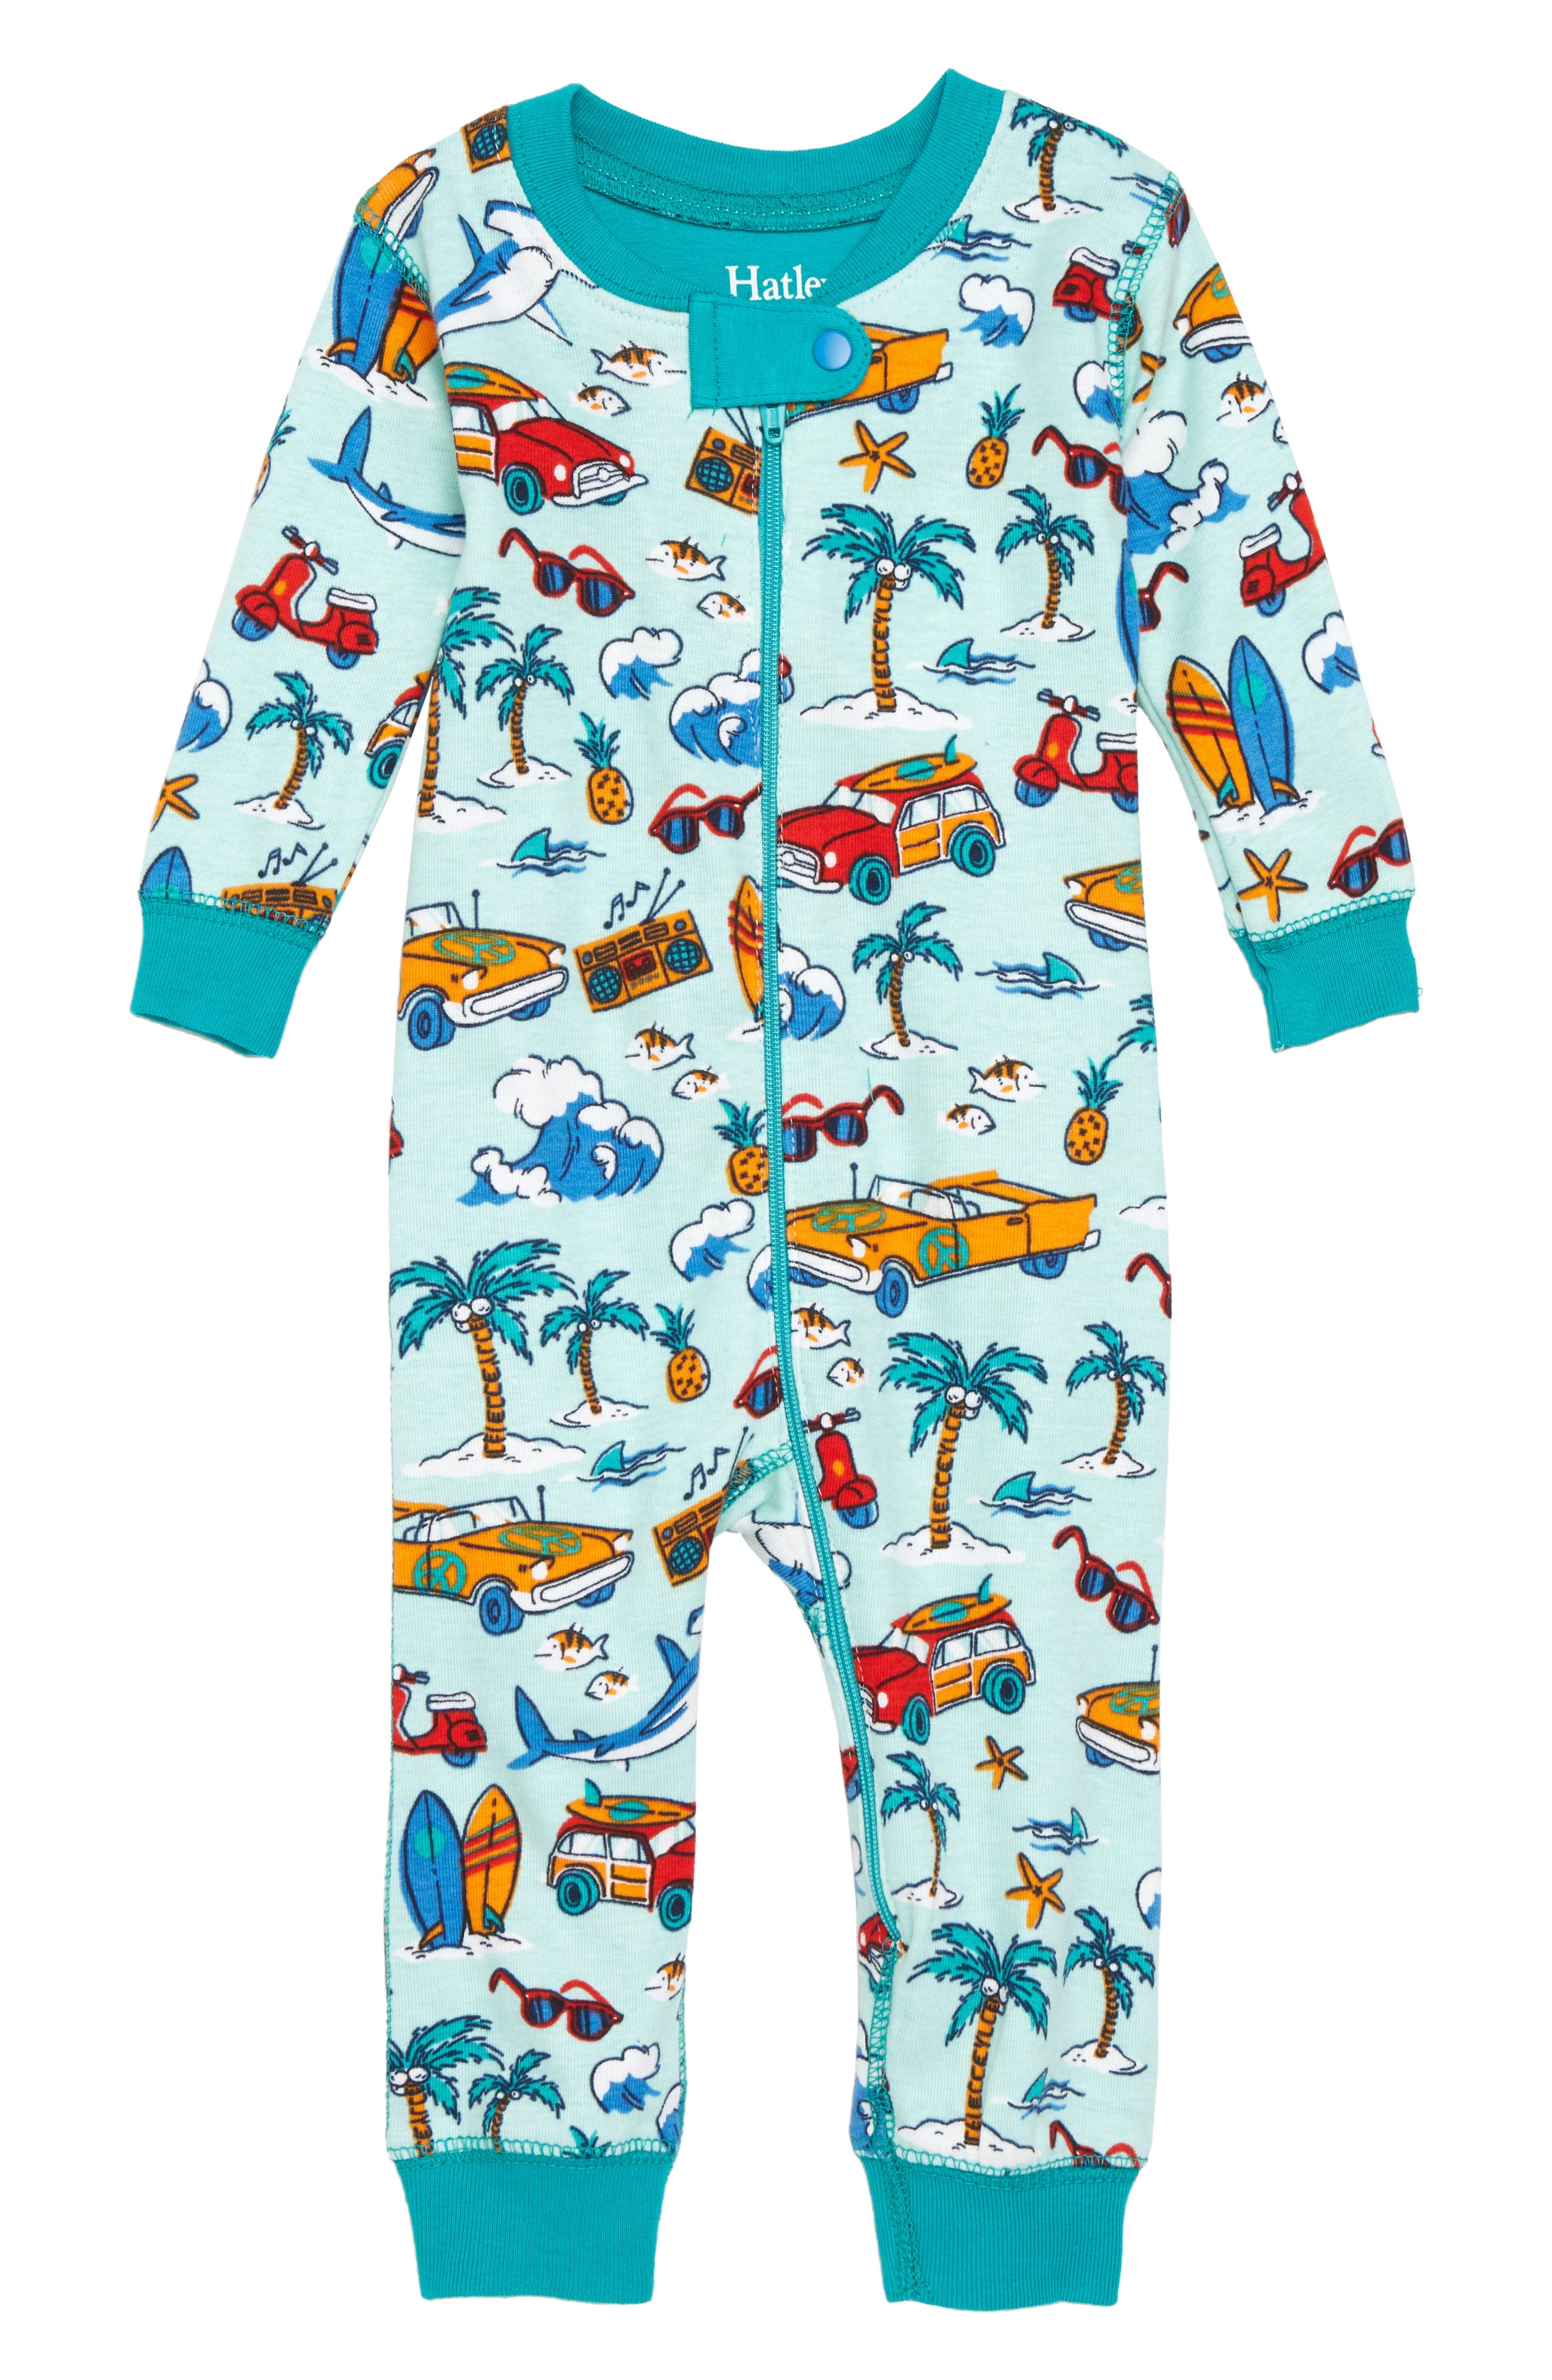 Haltey Organic Cotton Fitted One-Piece Pajamas,                         Main,                         color, Surf Island